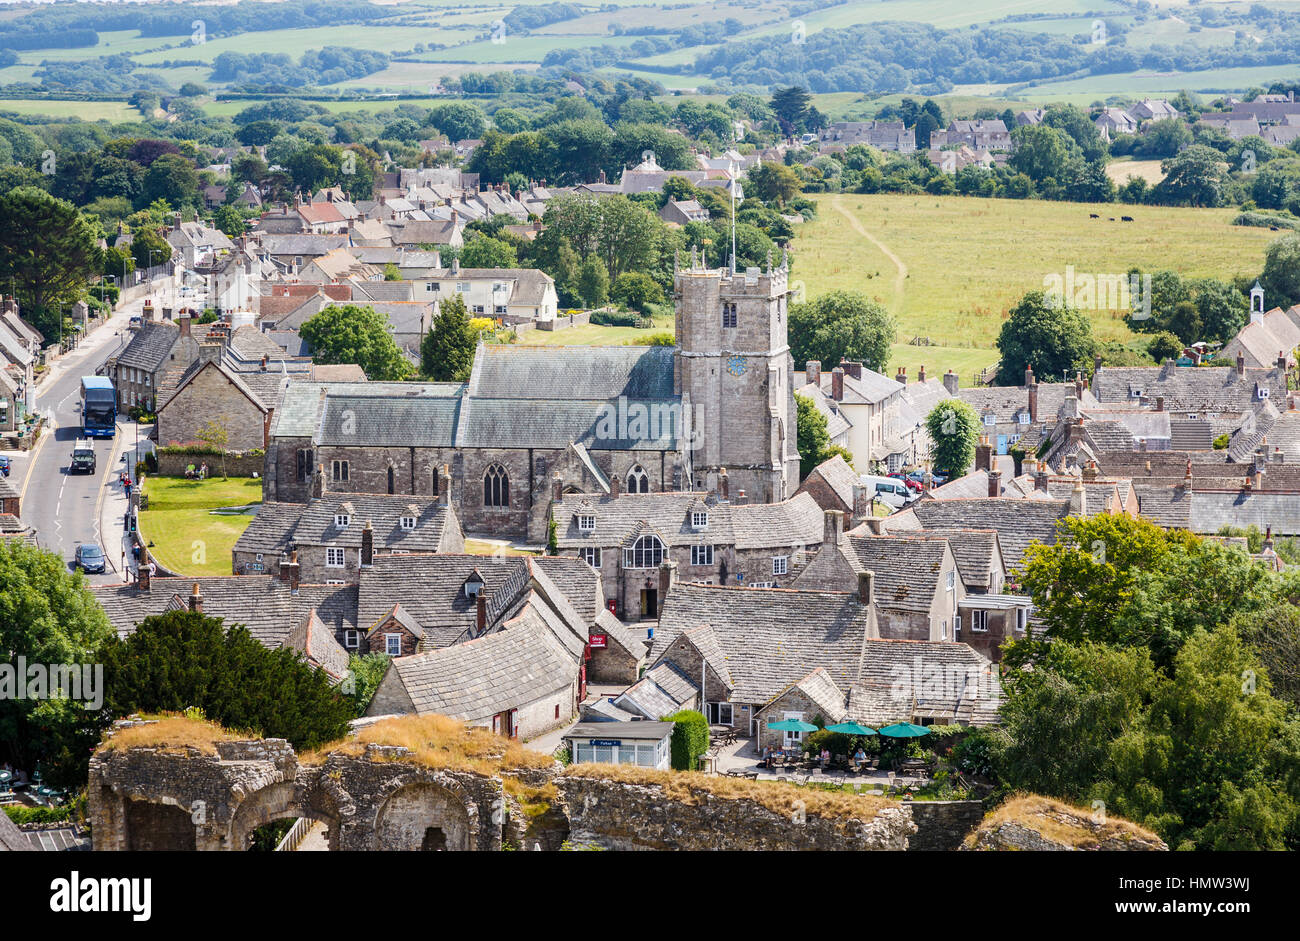 Rooftop view over the pretty, unspoiled village of Corfe Castle, Dorset, south-west England with its slate stone - Stock Image